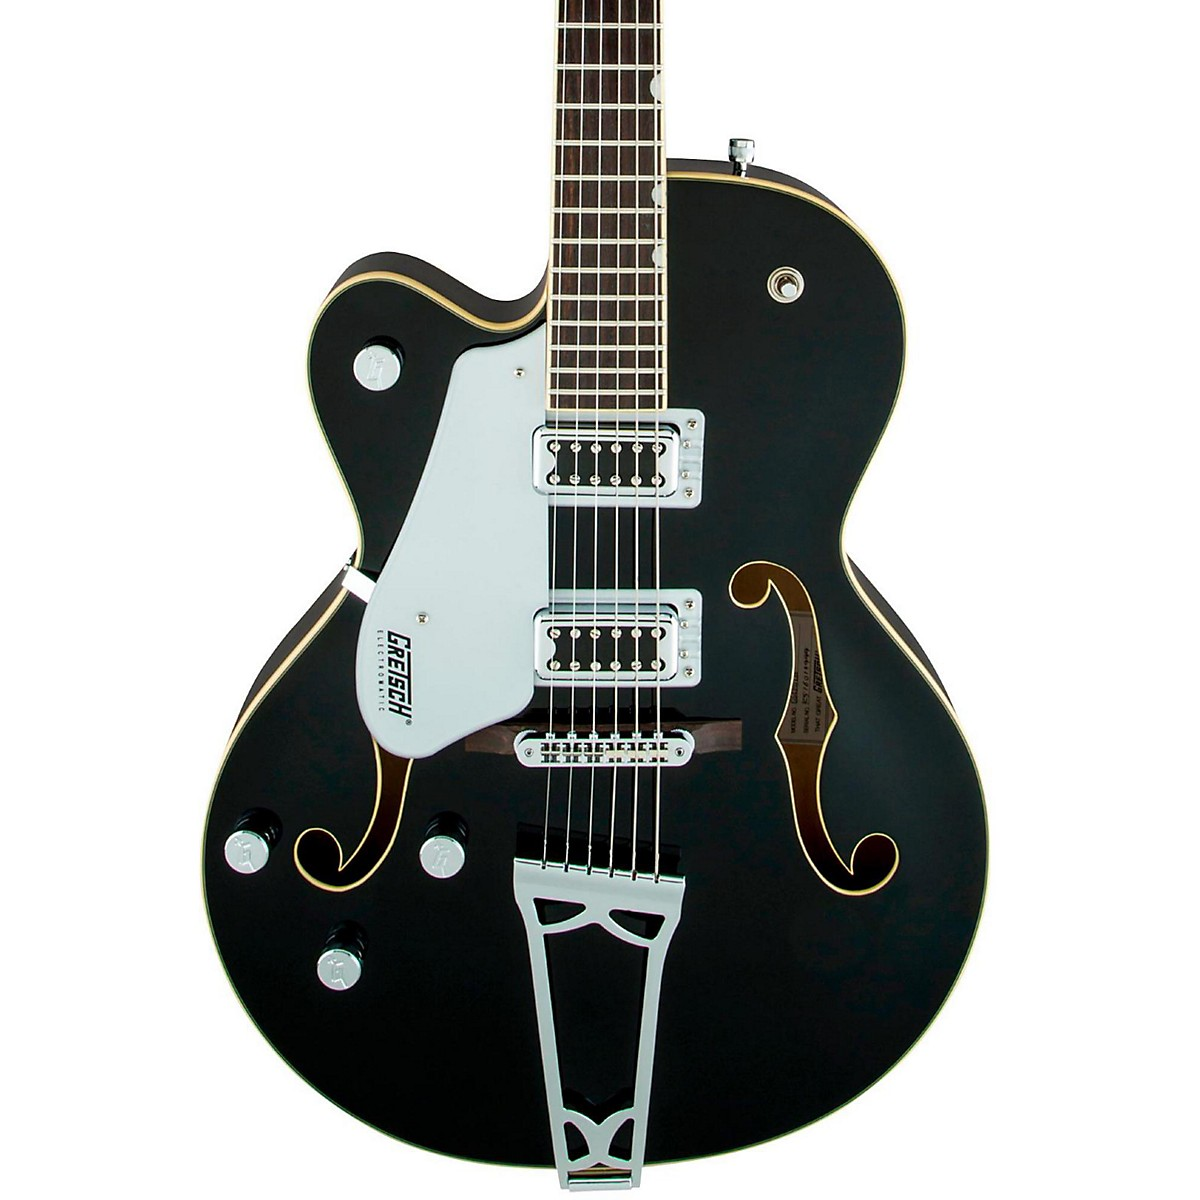 Gretsch Guitars G5420LH Electromatic Hollowbody Left Handed Electric Guitar